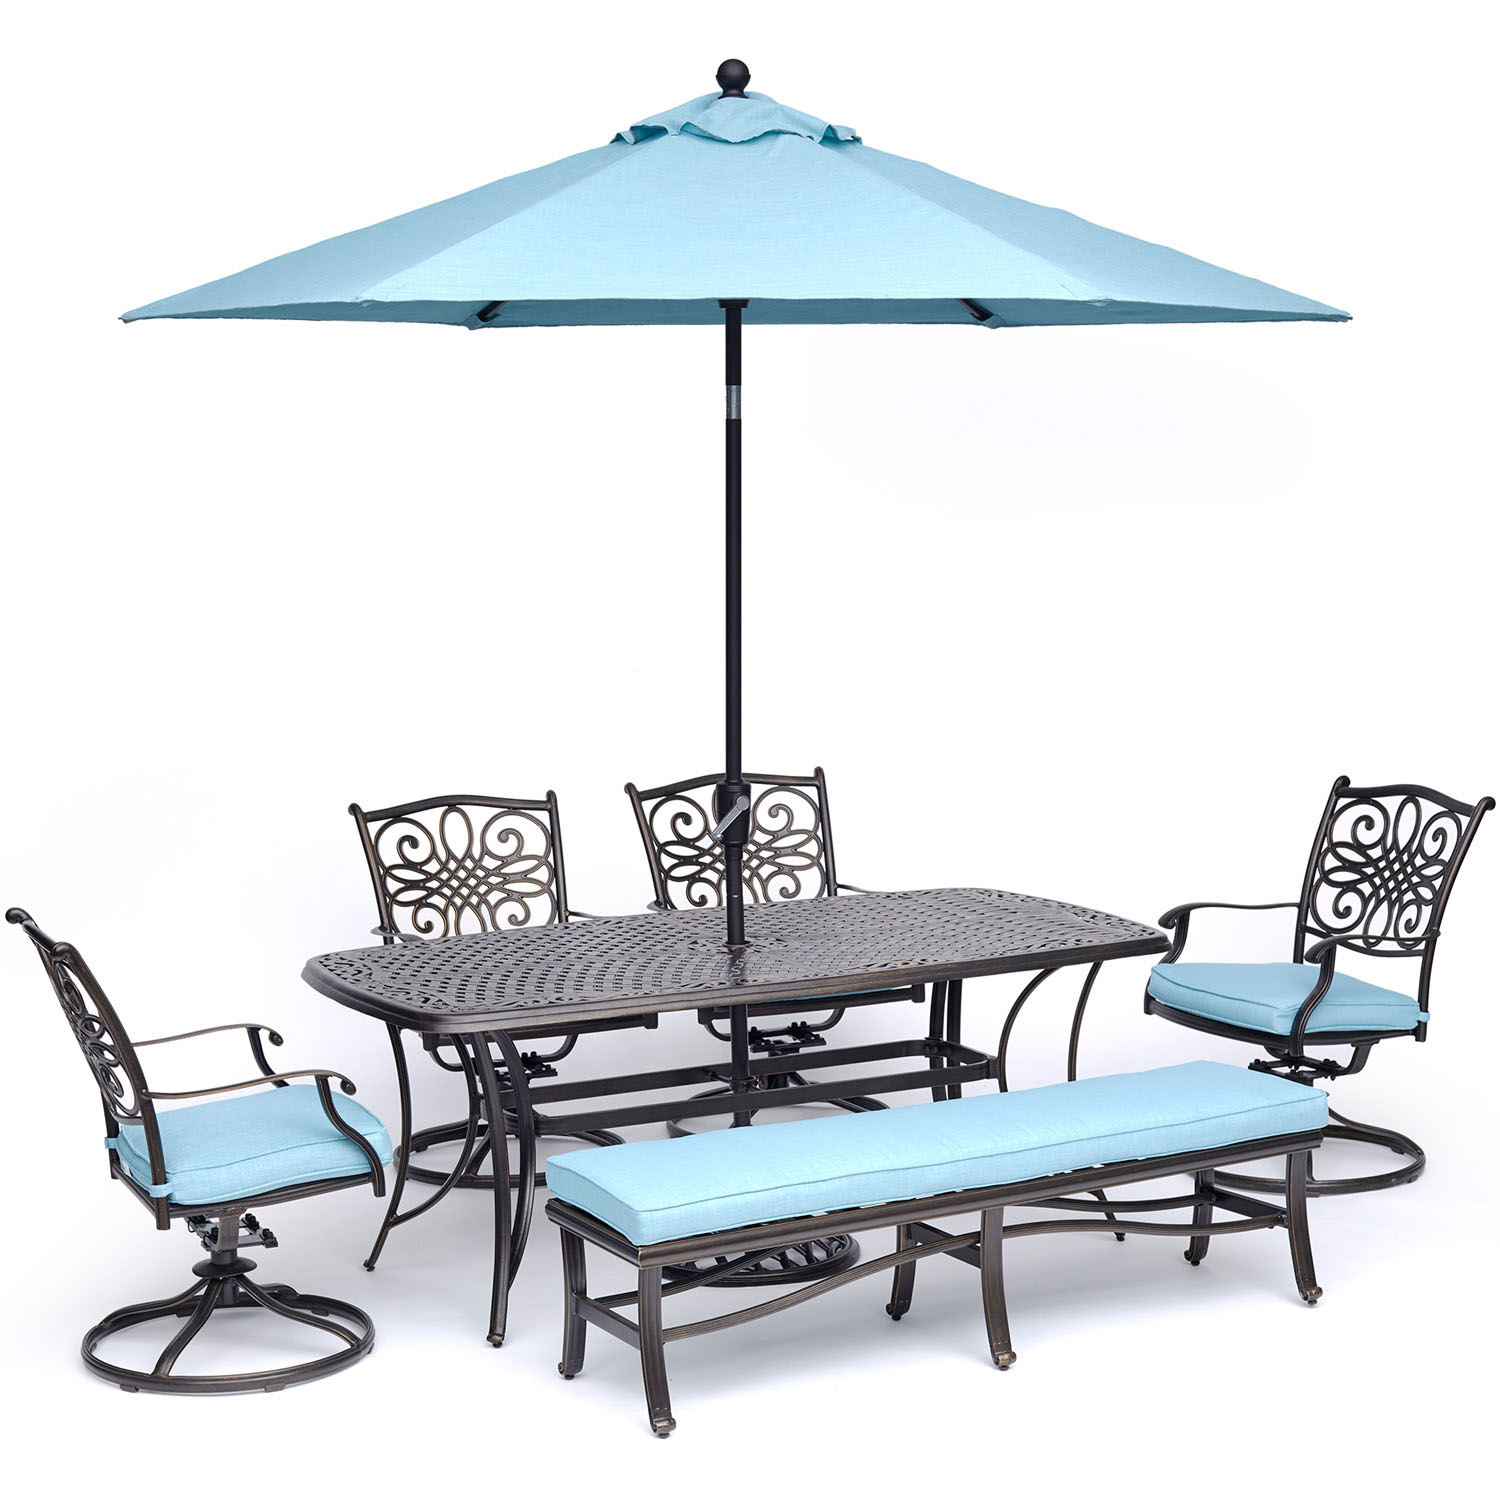 Hanover Traditions 6-Piece Outdoor Dining Set with Cast-Top Table, 4 Swivel Rockers, 1 Bench, 9-Ft. Table Umbrella and Stand